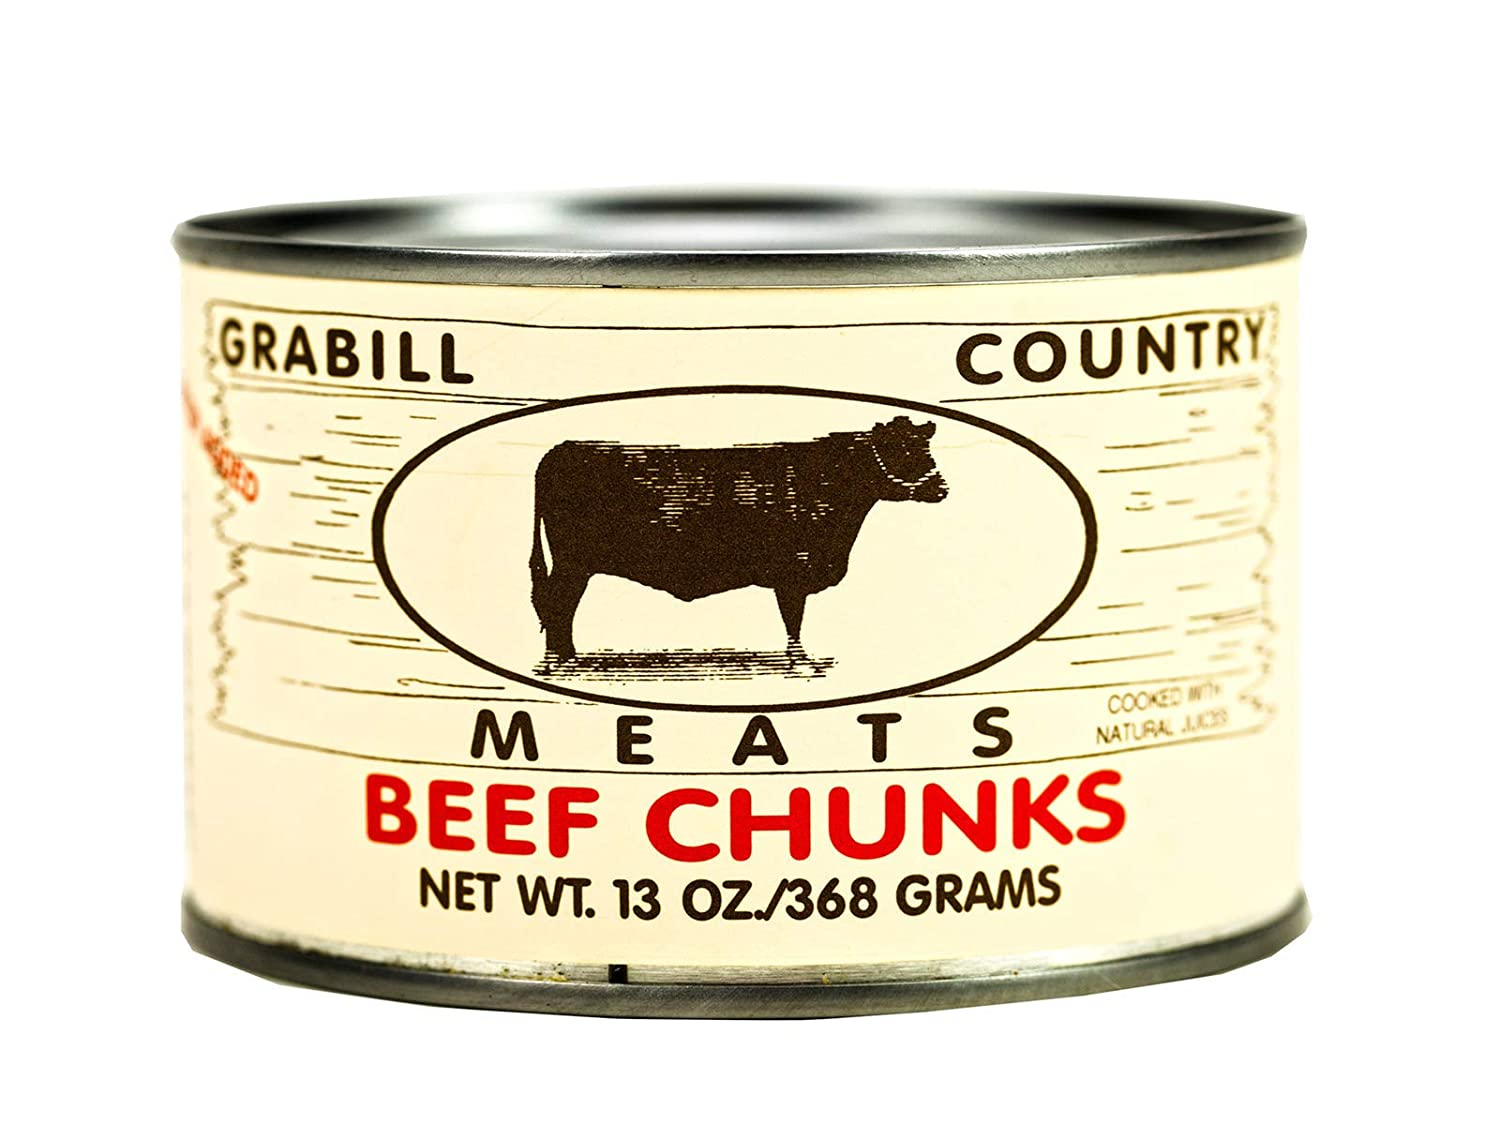 Grabill Country Meats Canned Meats, Variety Pack, Favorite Amish Food, 52 Oz.